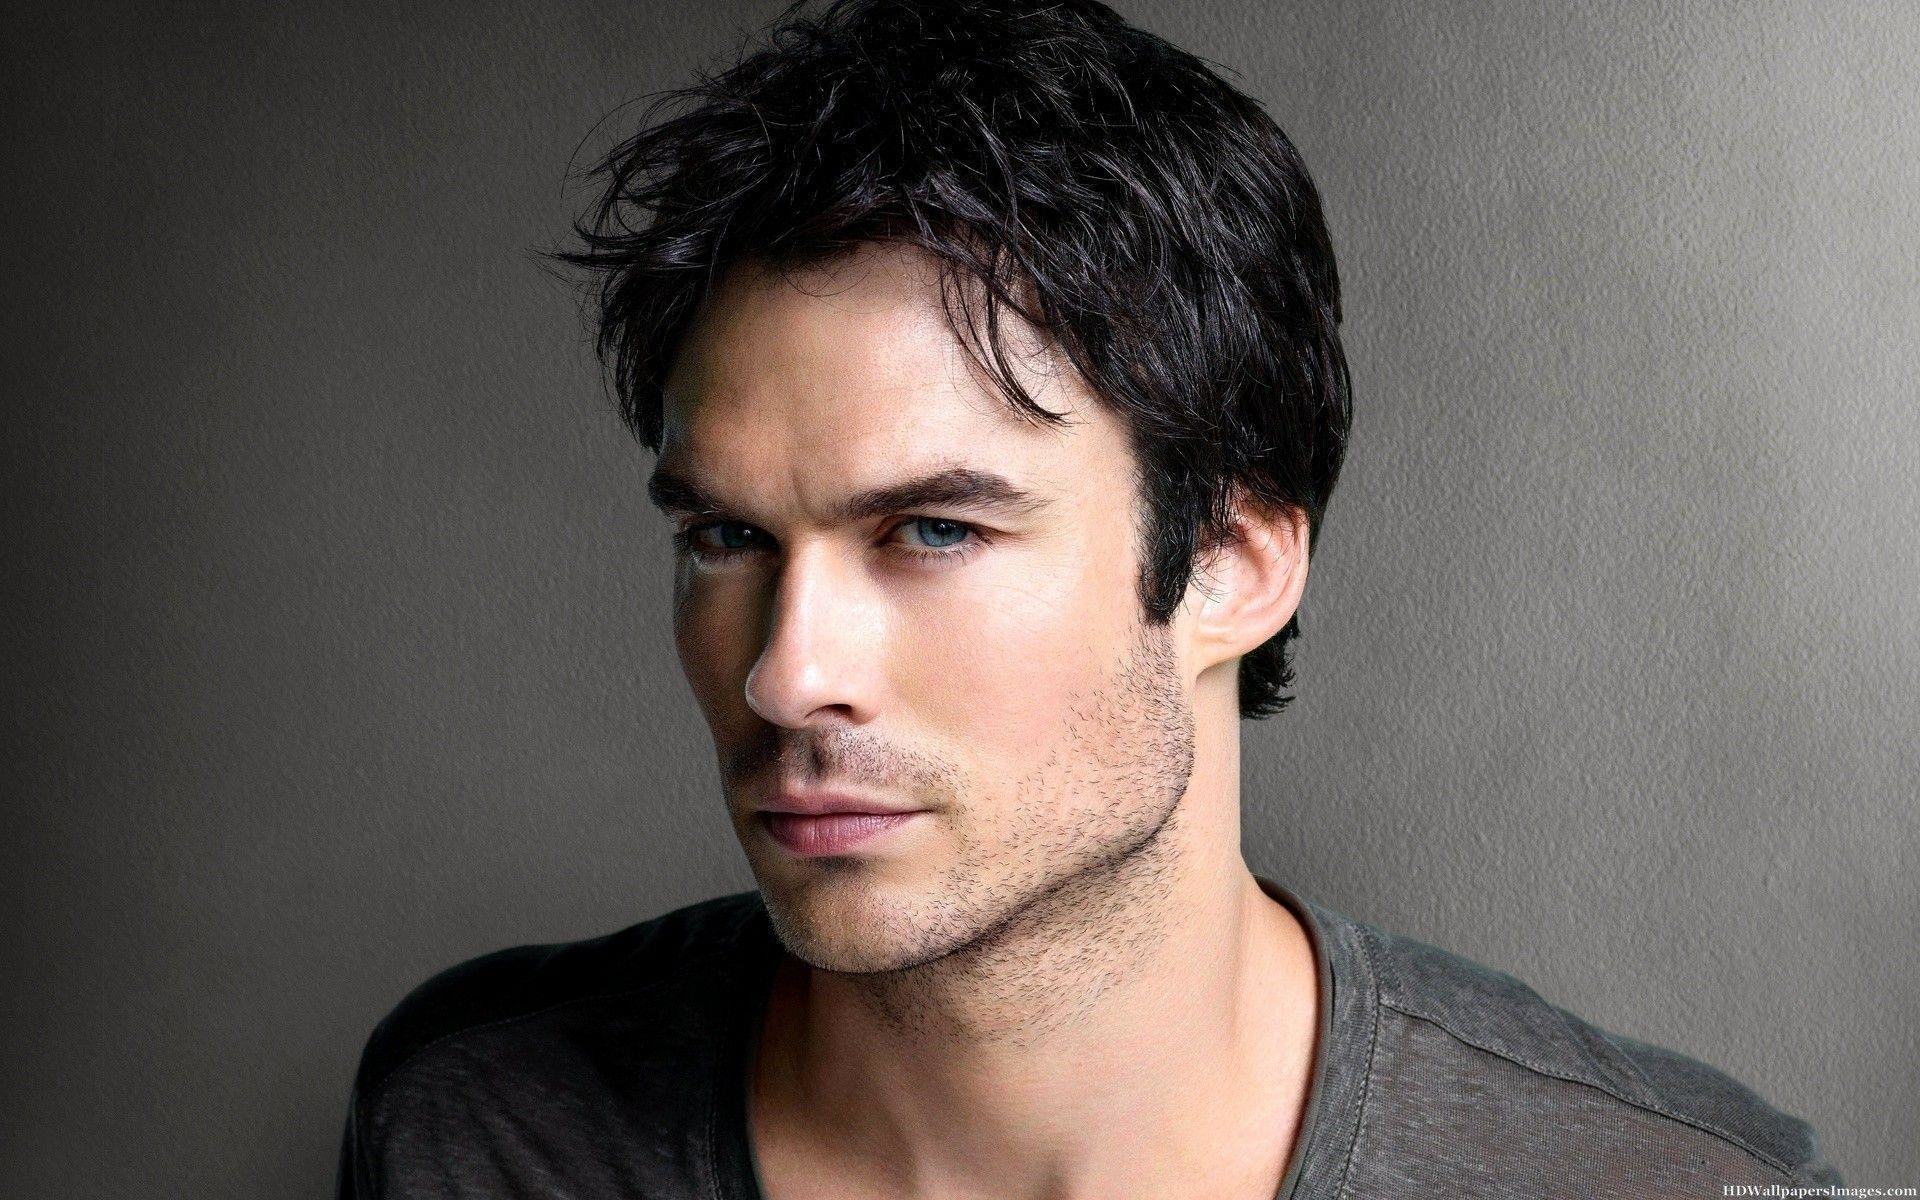 Res: 1920x1200, Ian Somerhalder 2014 Images | HD Wallpapers Images